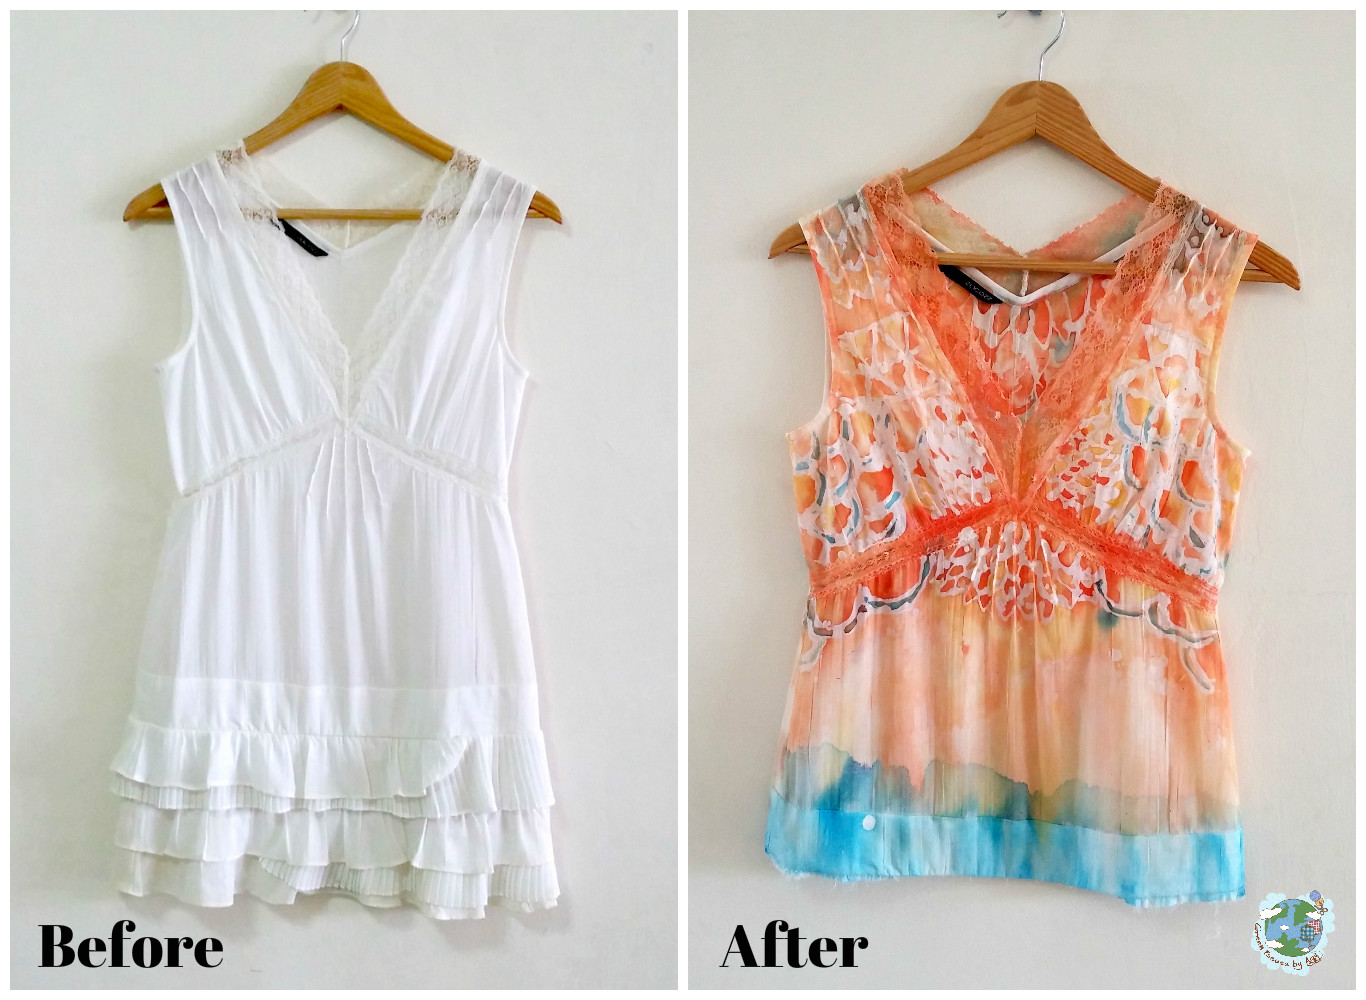 Upcycling using dyeing techniques